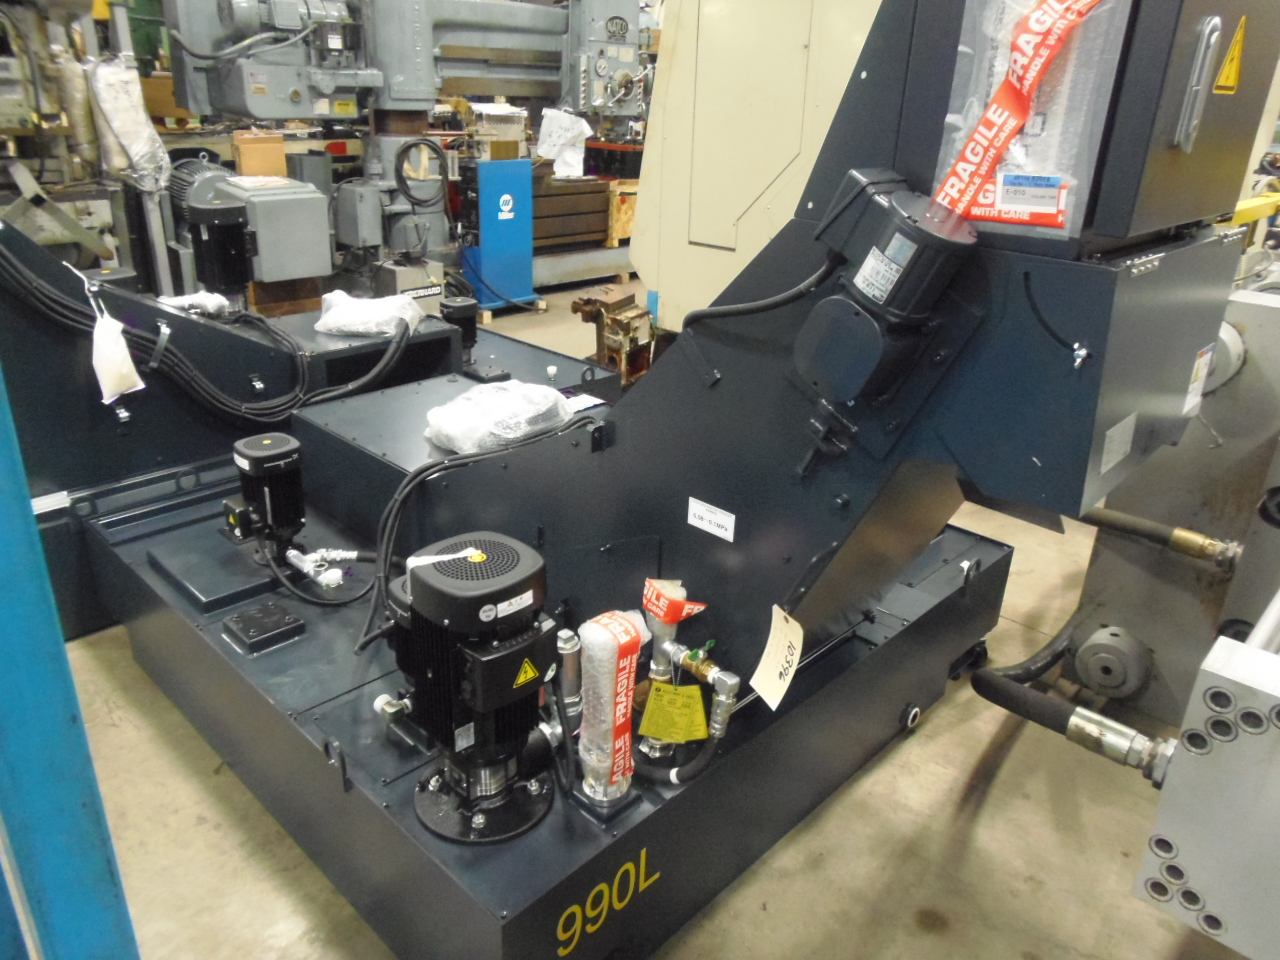 UNUSED COOLANT/CHIP SYSTEM FROM MAKINO A61 HORIZONTAL MACHINING CENTER